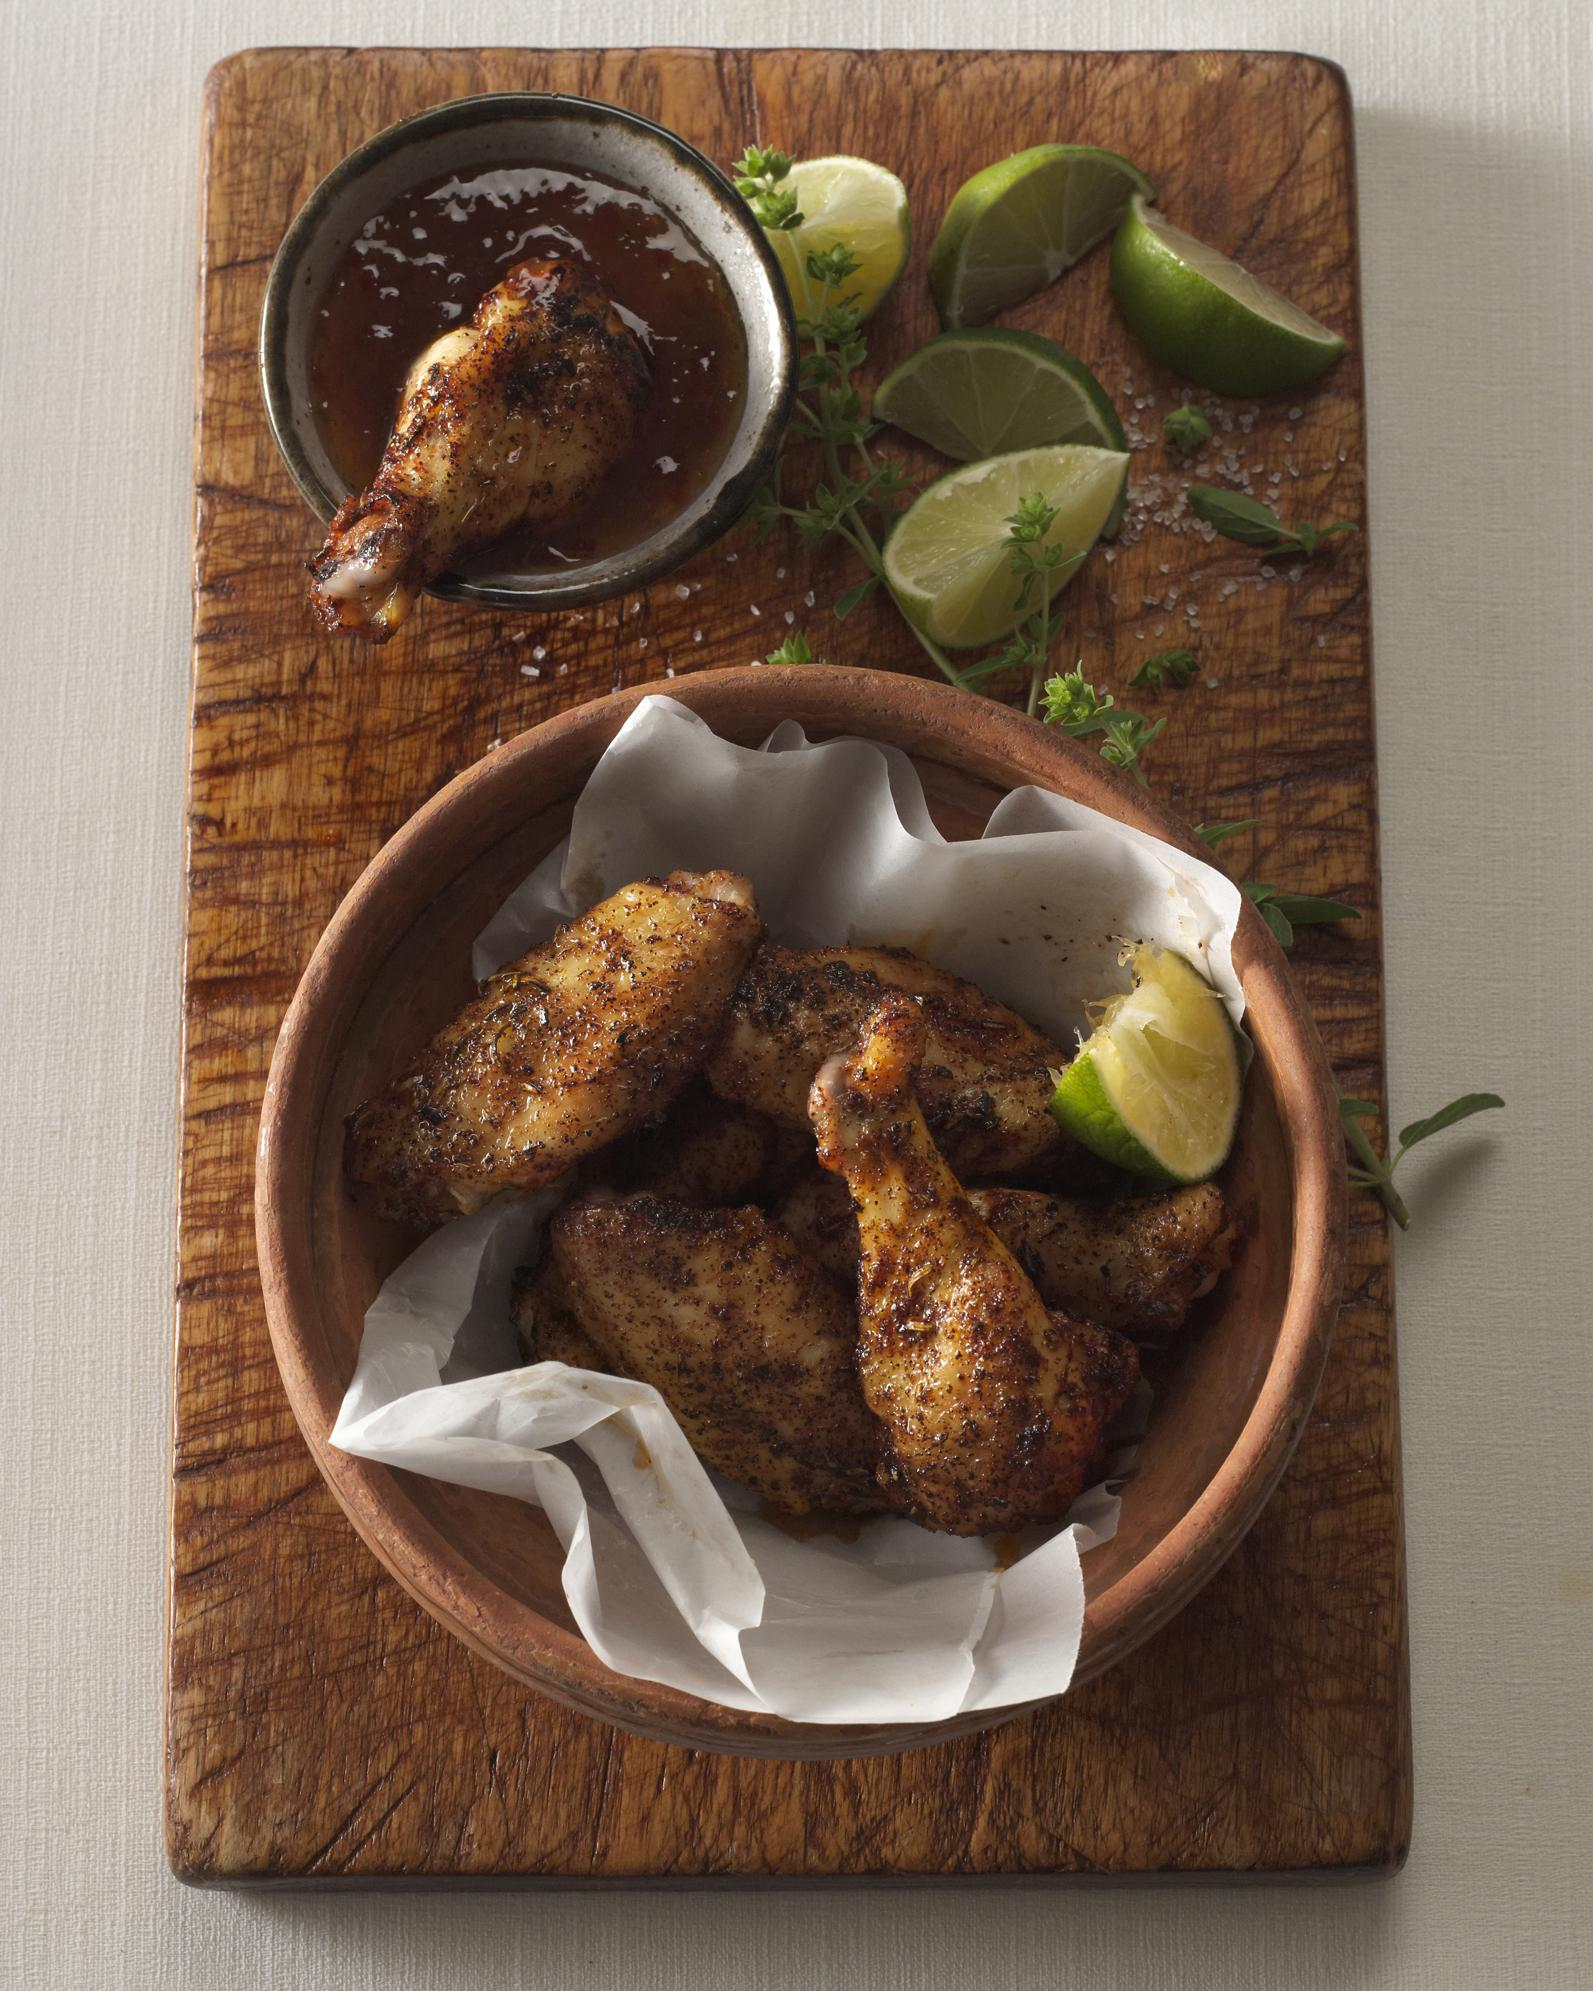 Chipotle-Spiced Honey Garlic Wings with Pepper Jelly Dip